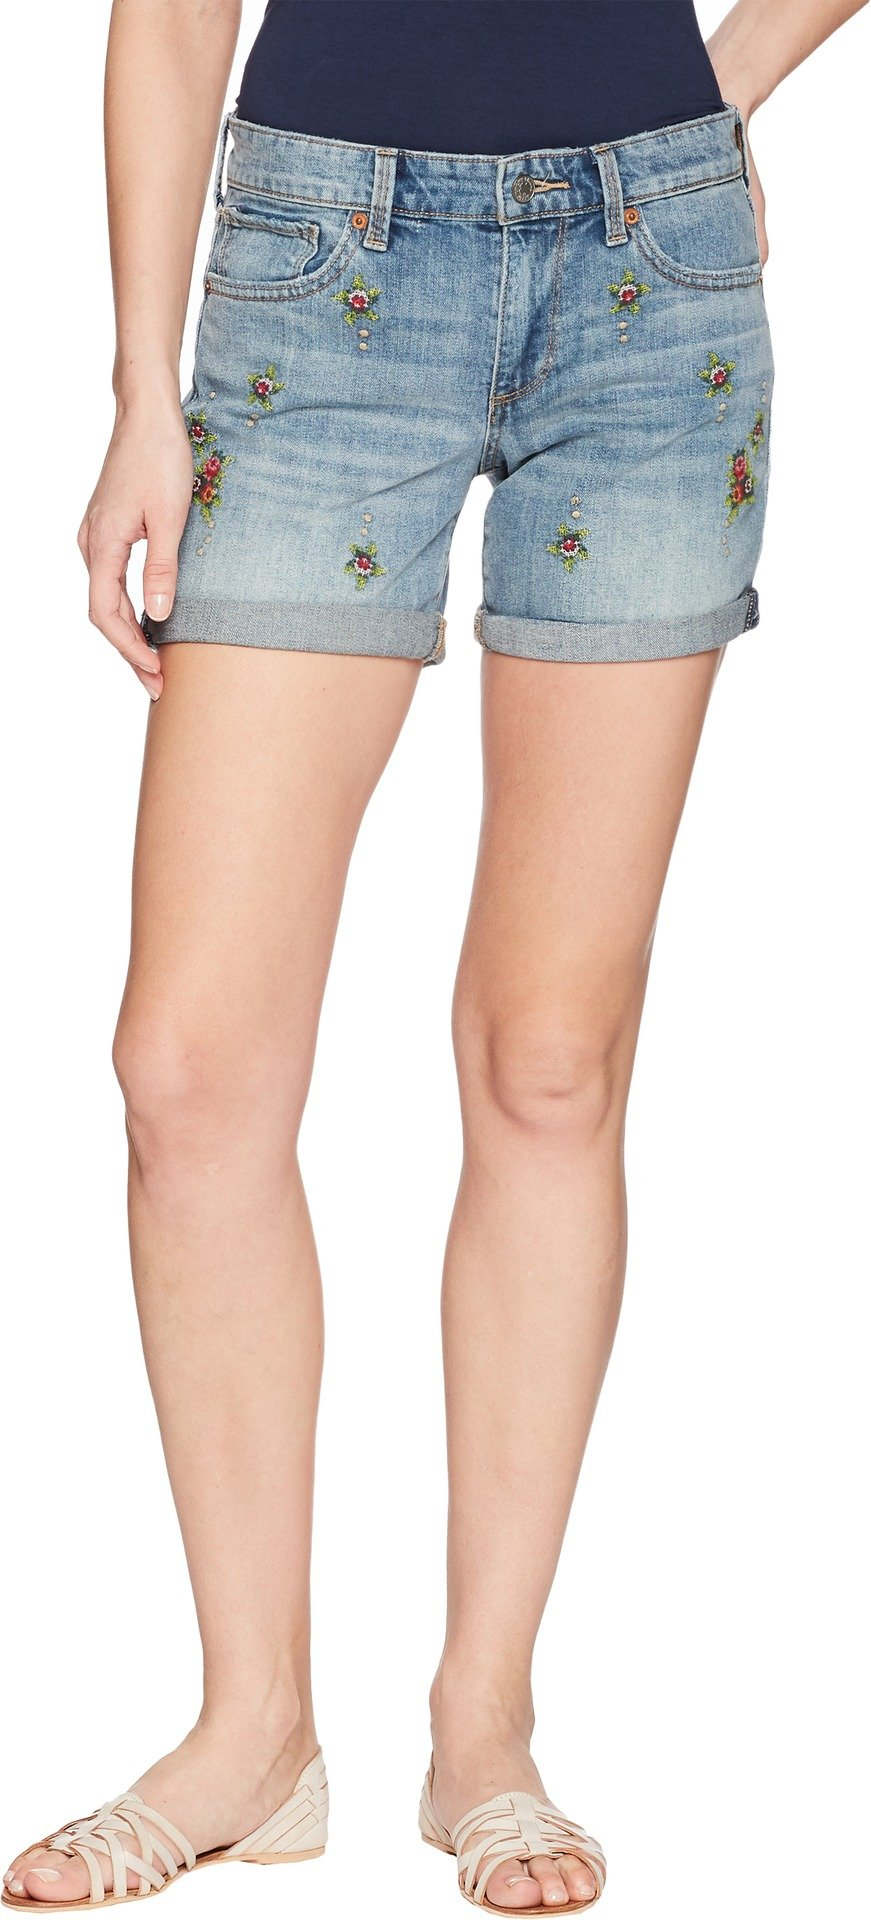 Lucky Brand Women's Mid Rise Roll up Short, Alamitos, 30